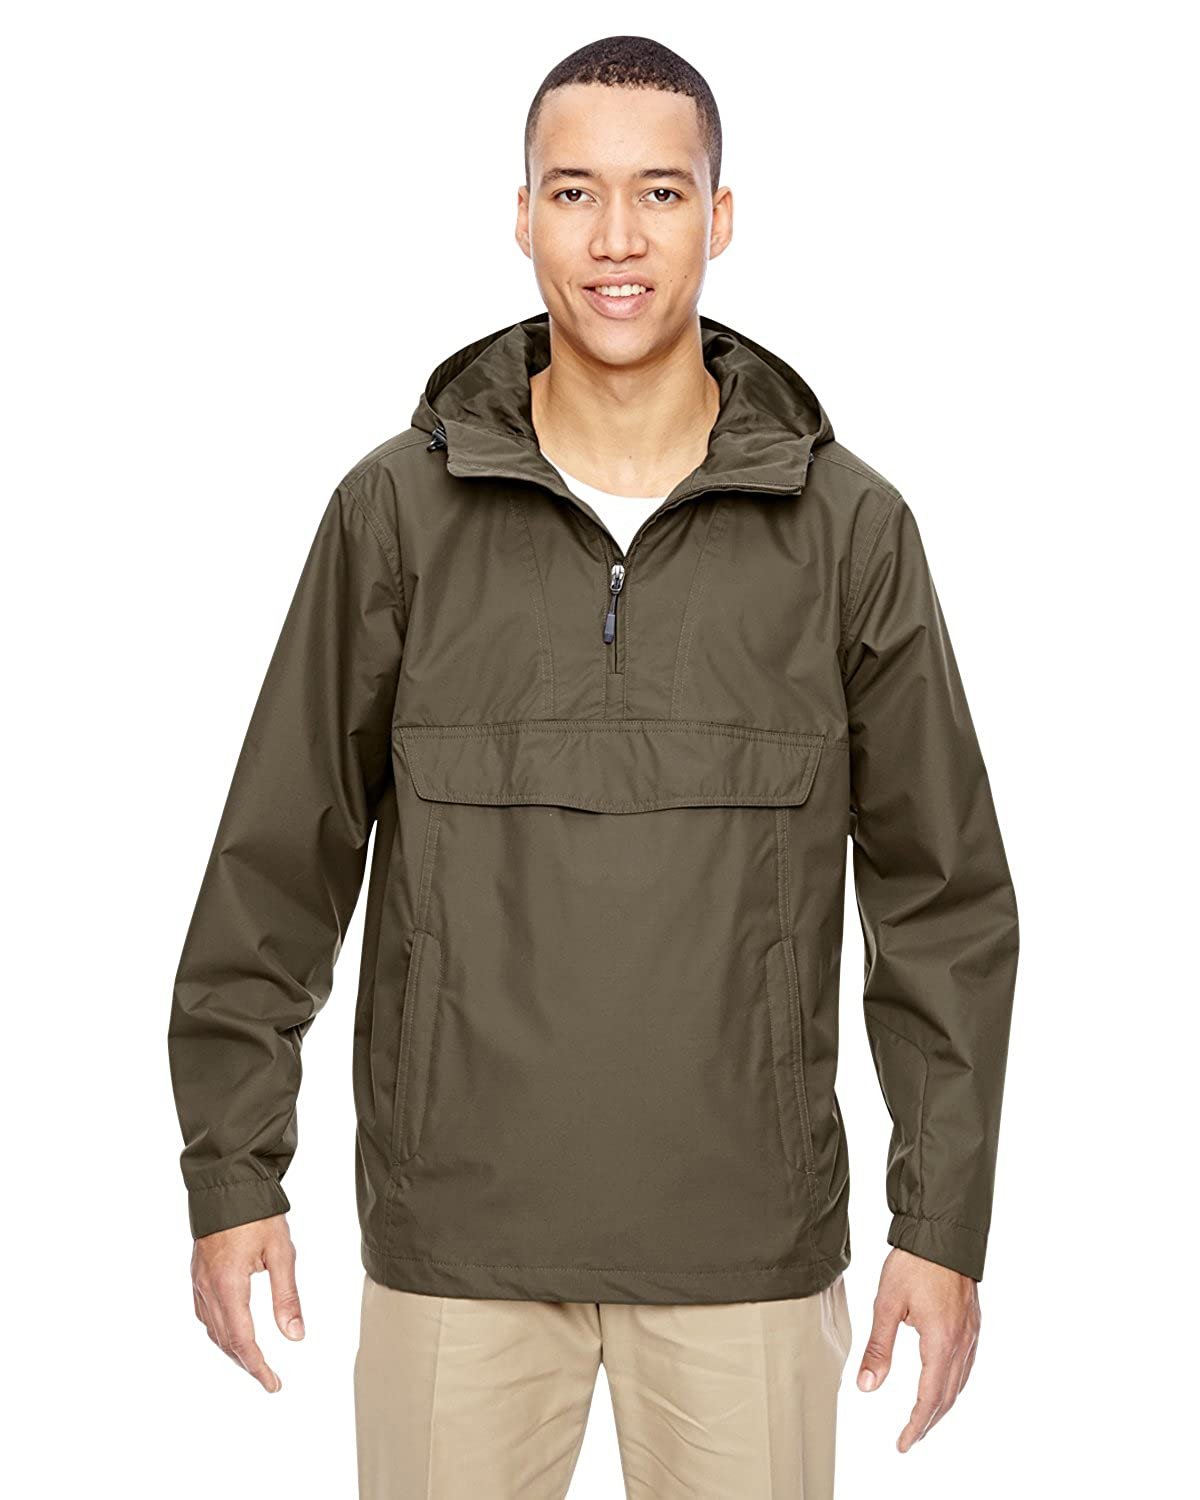 Men's Excursion Intrepid Lightweight Anorak DK OAKMOSS 487 2XL